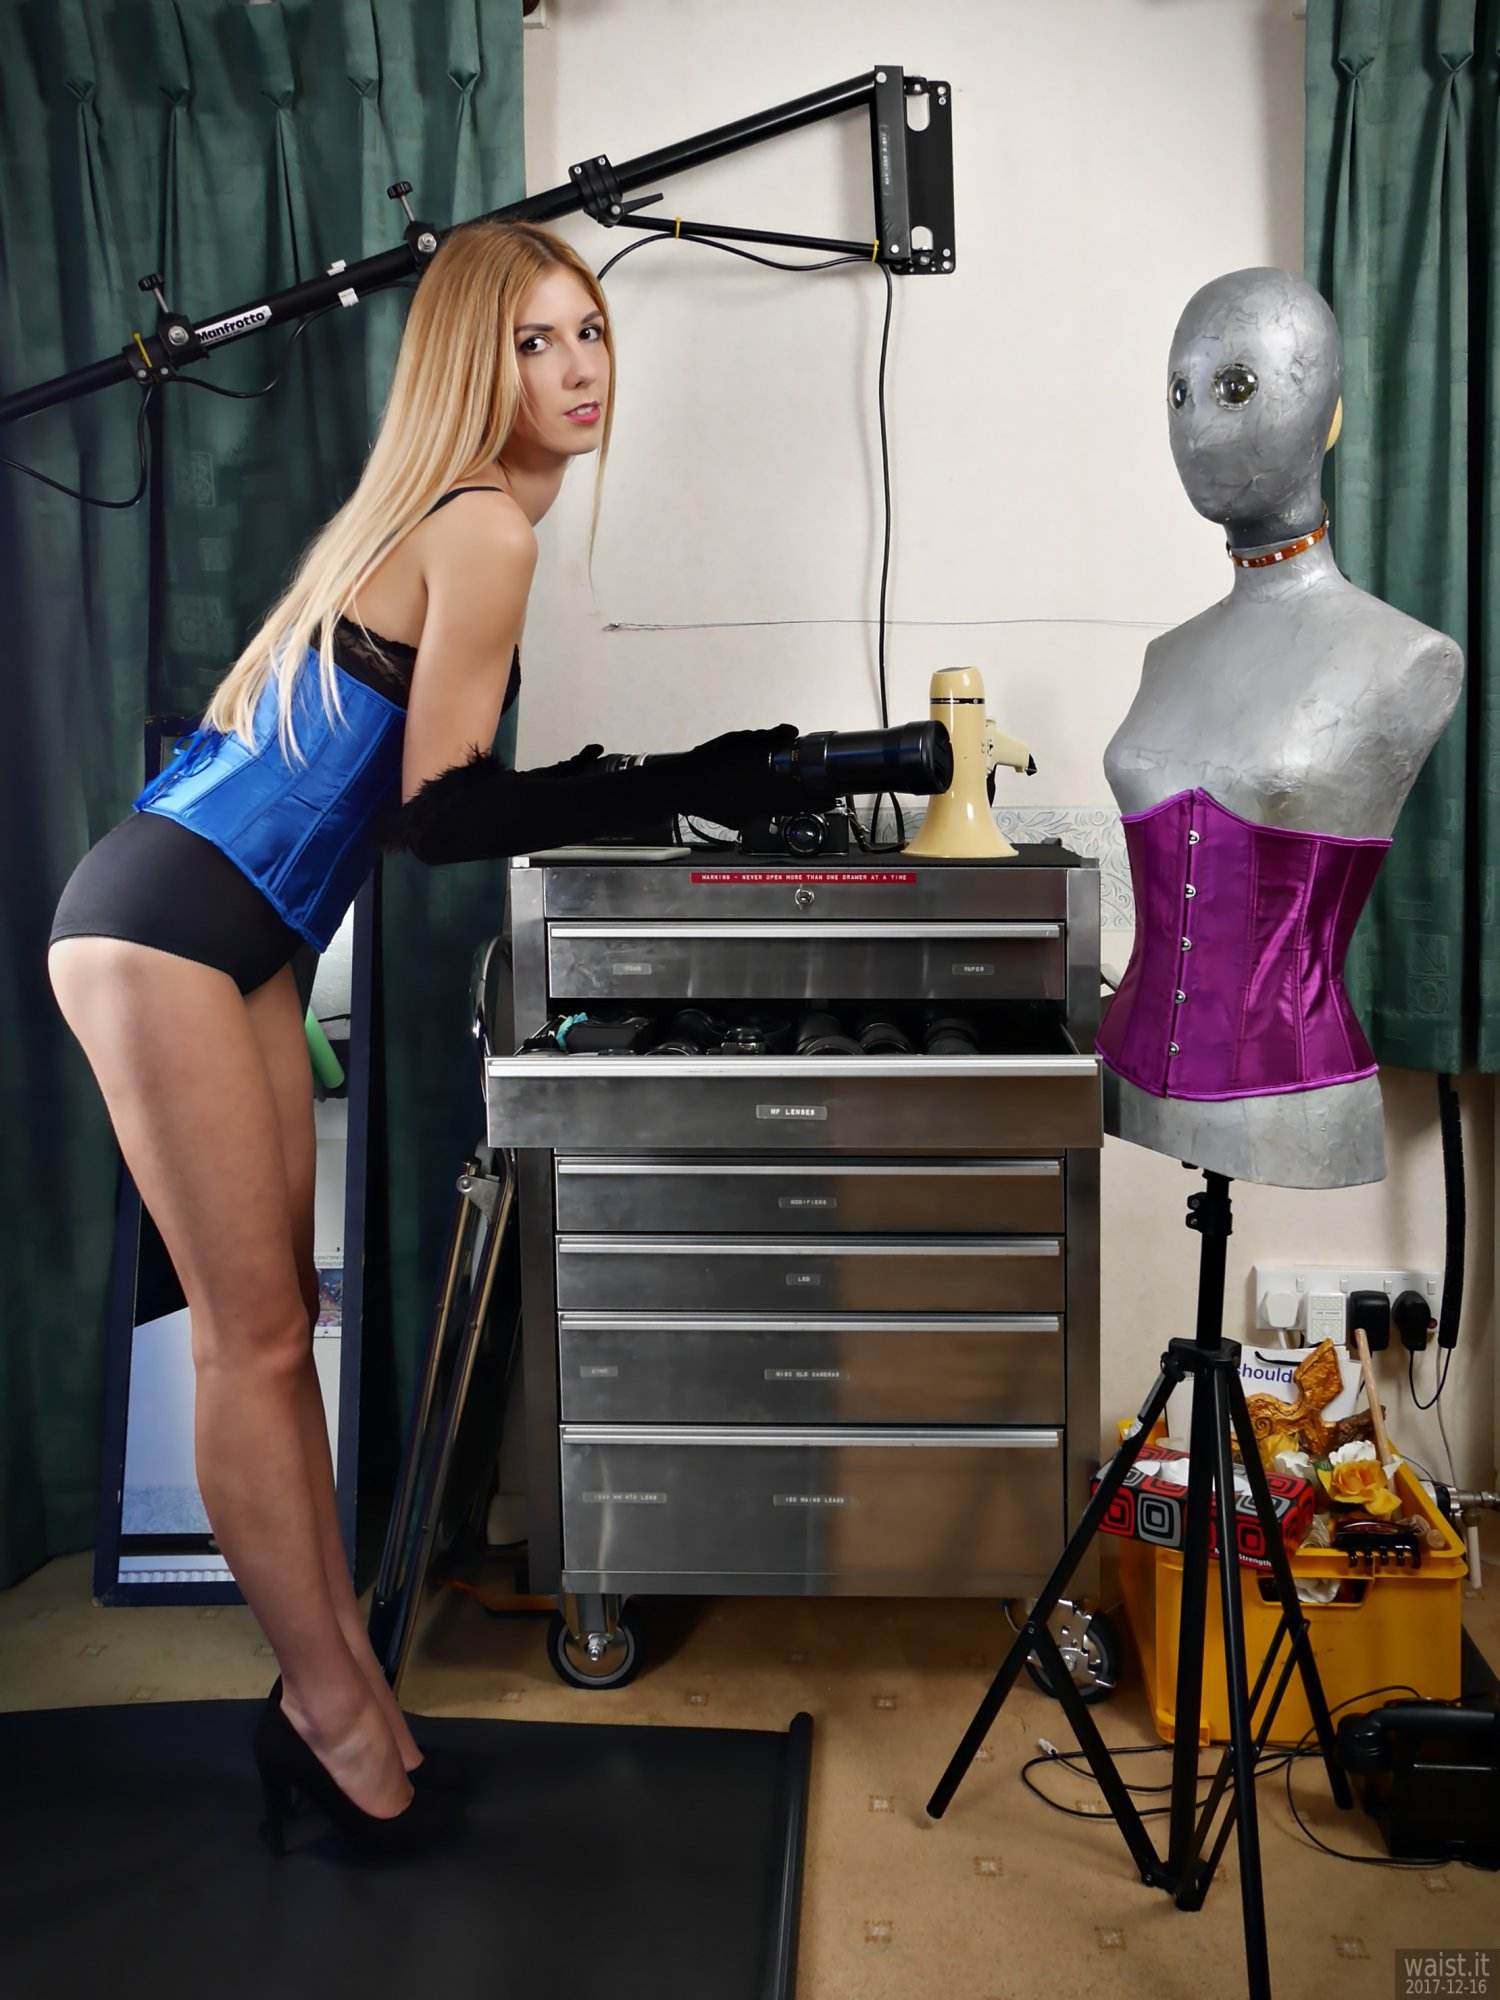 2017-12-16 Christina Demy demonstrates the stainless steel equipment chest